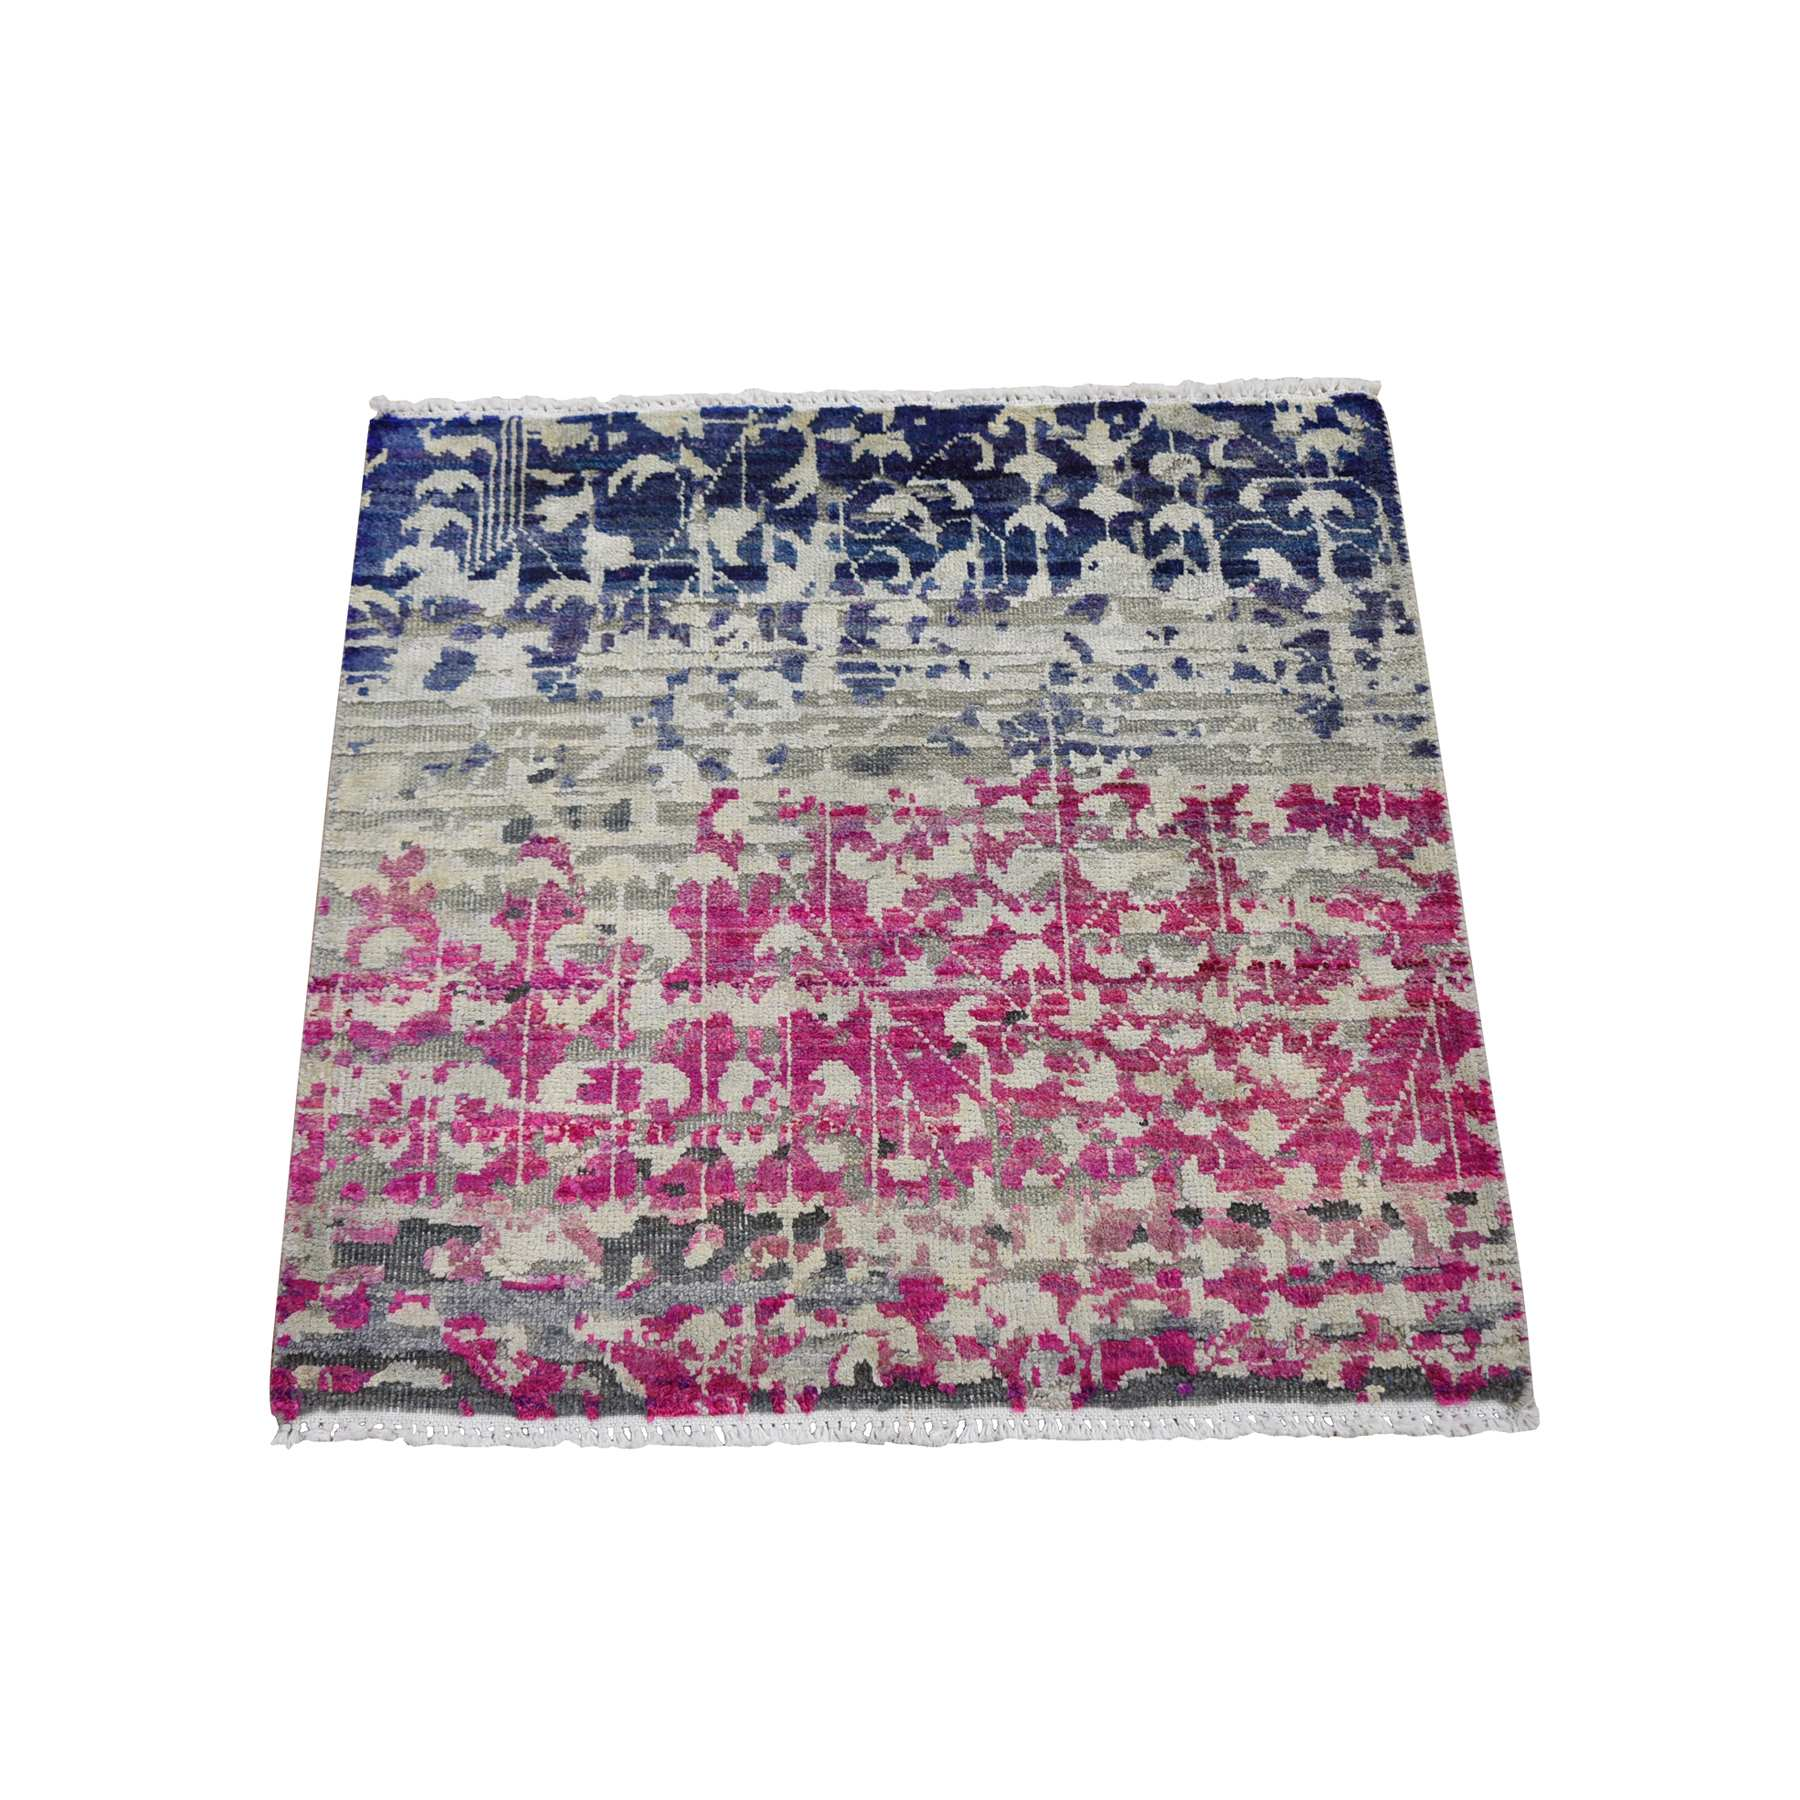 Mid Century Modern Collection Hand Knotted Pink Rug No: 01118566